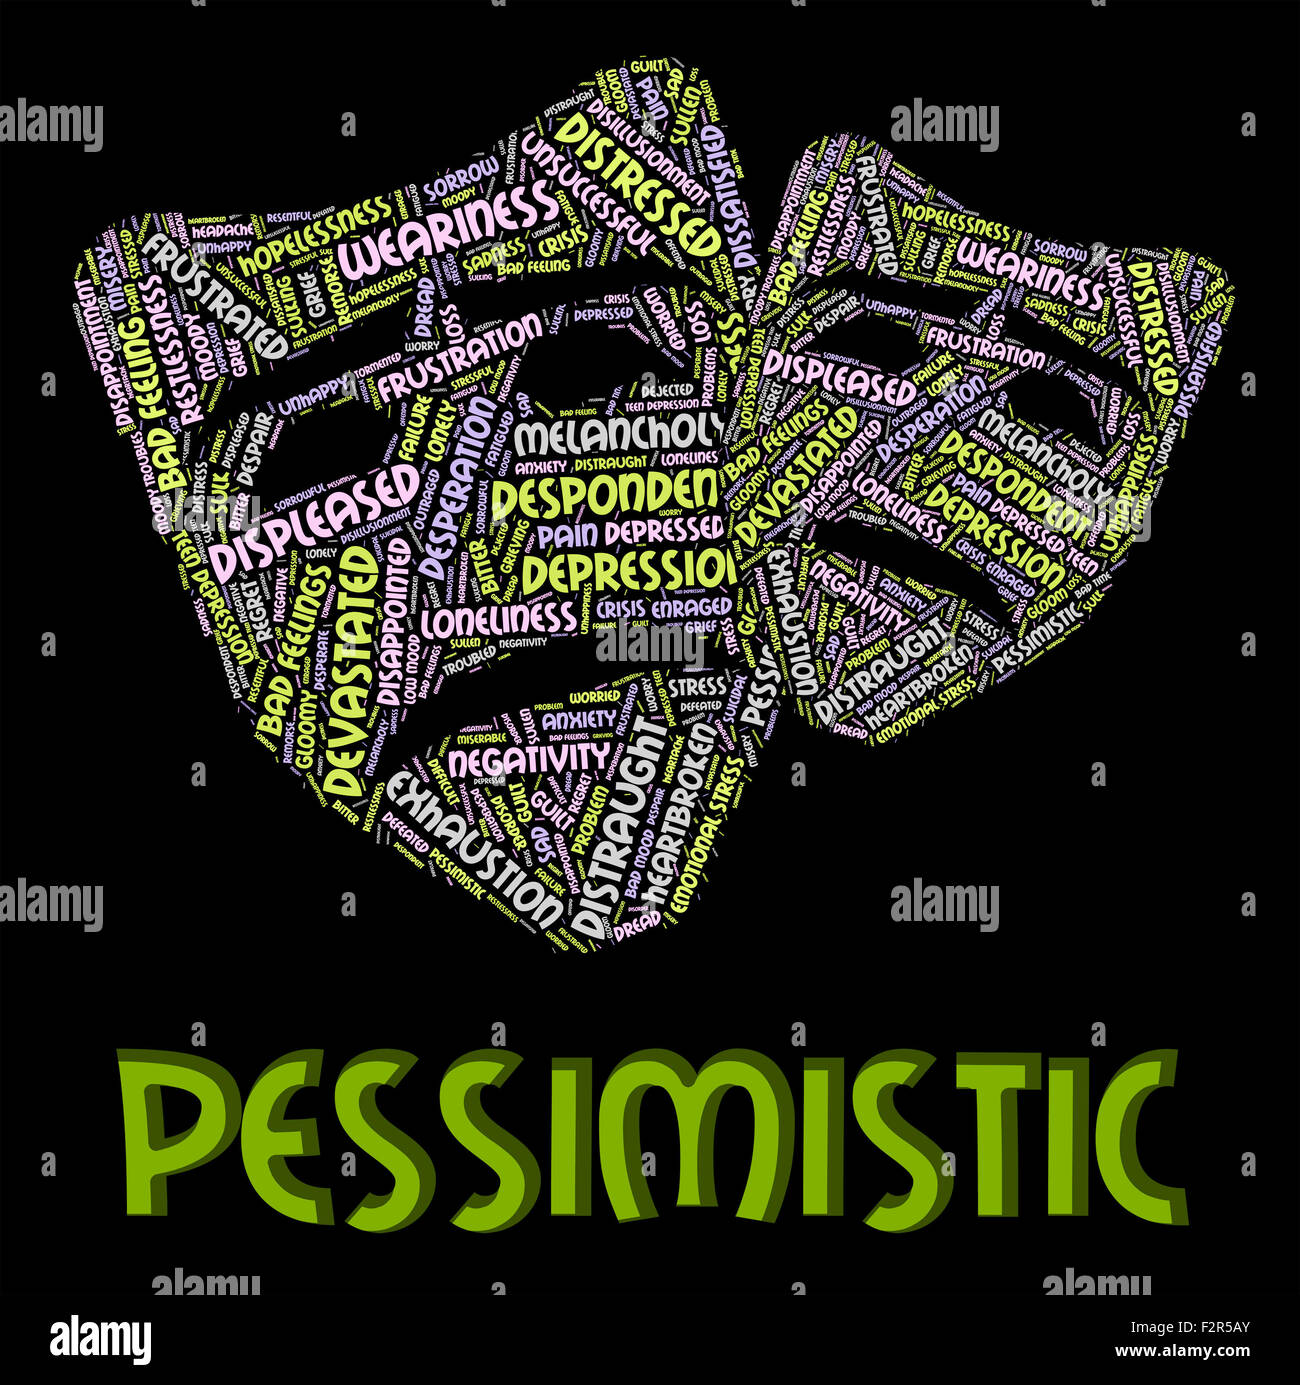 Pessimistic Word Meaning Demoralized Despondent And Melancholy - Stock Image